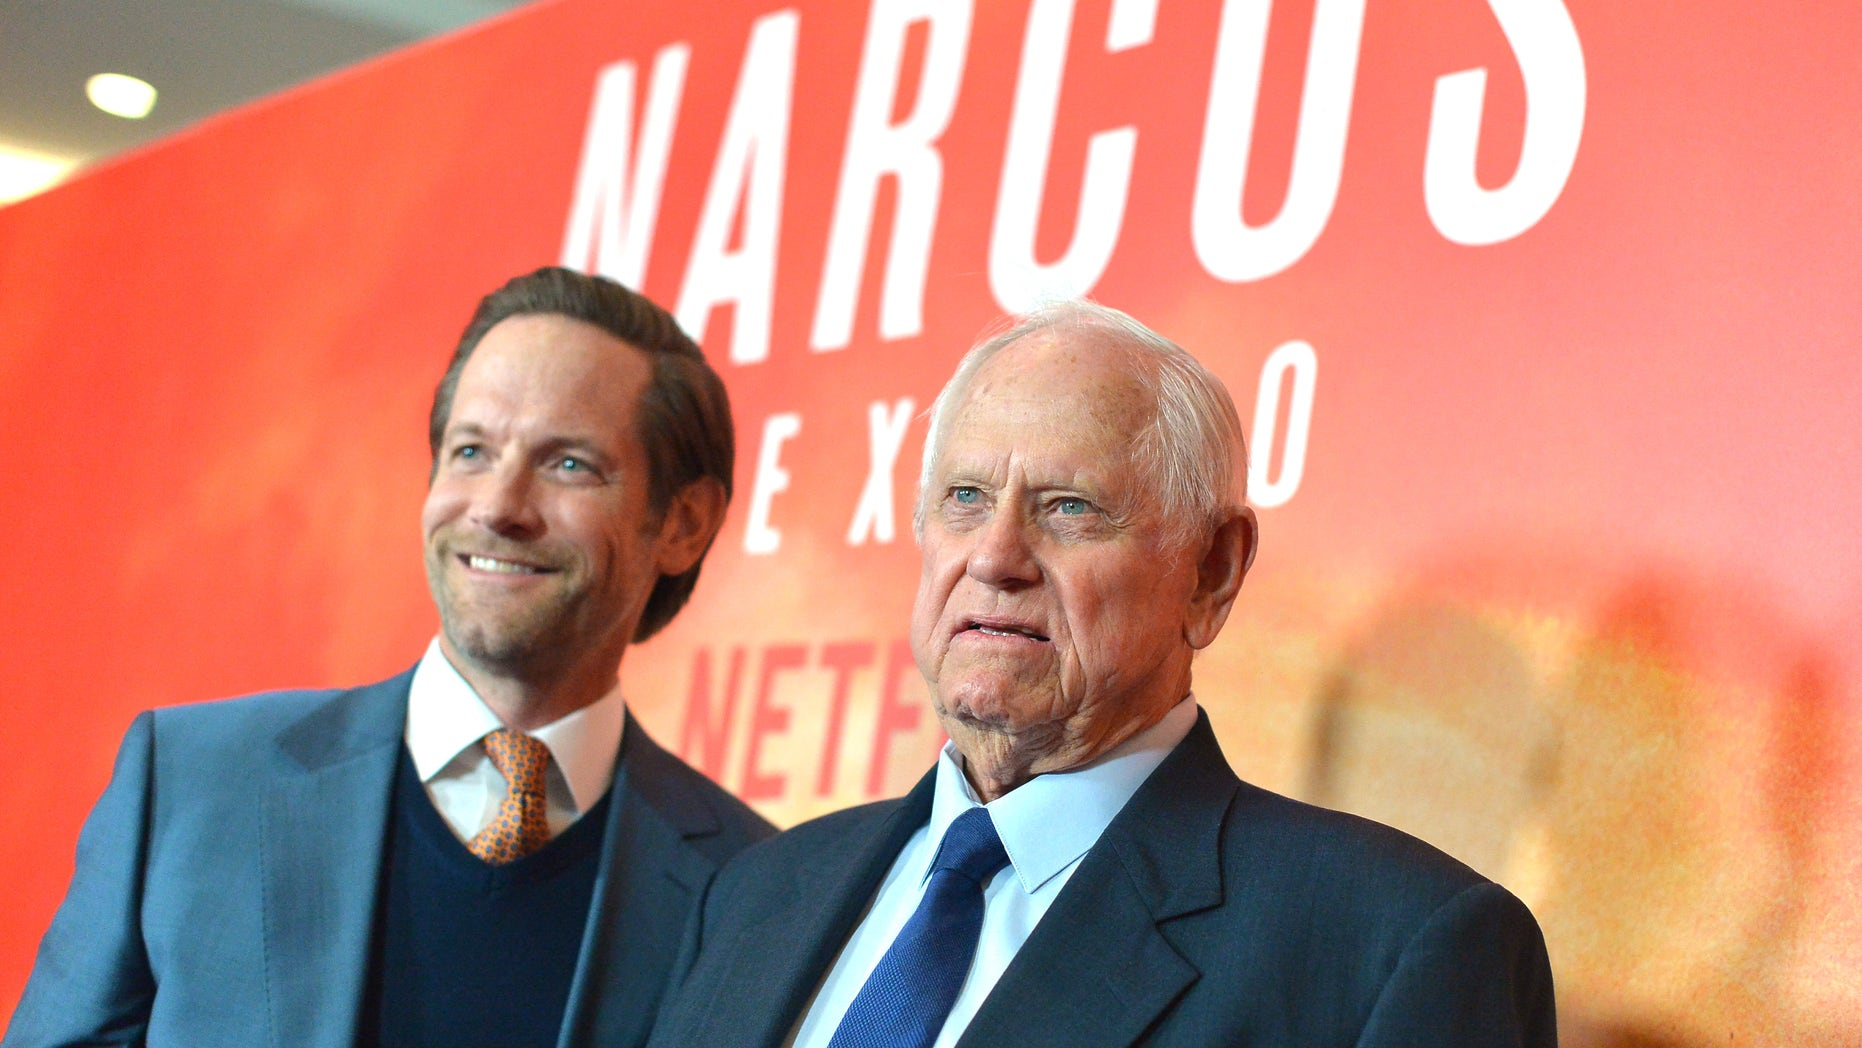 Narcos: Mexico' star Matt Letscher opens up about the 'scary